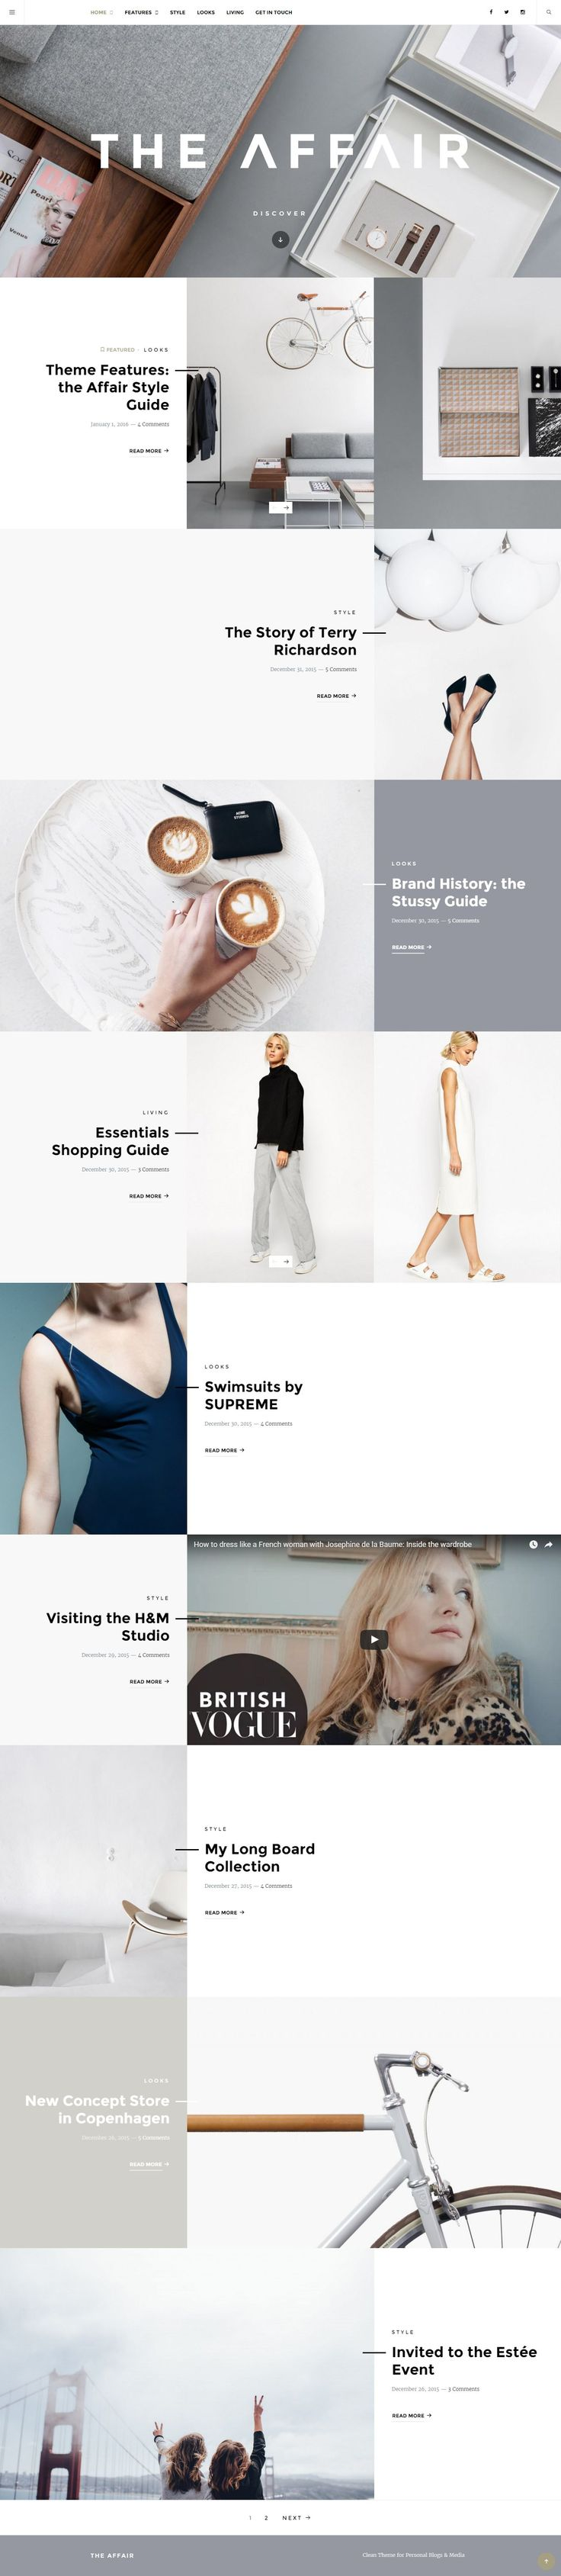 The Affair is a clean responsive WordPress theme for personal blogs and magazines.  Enjoy the minimalist look, well-thought typography and various post format options, including slideshows, galleries, featured text and images.  Share your great stories with the Affair.